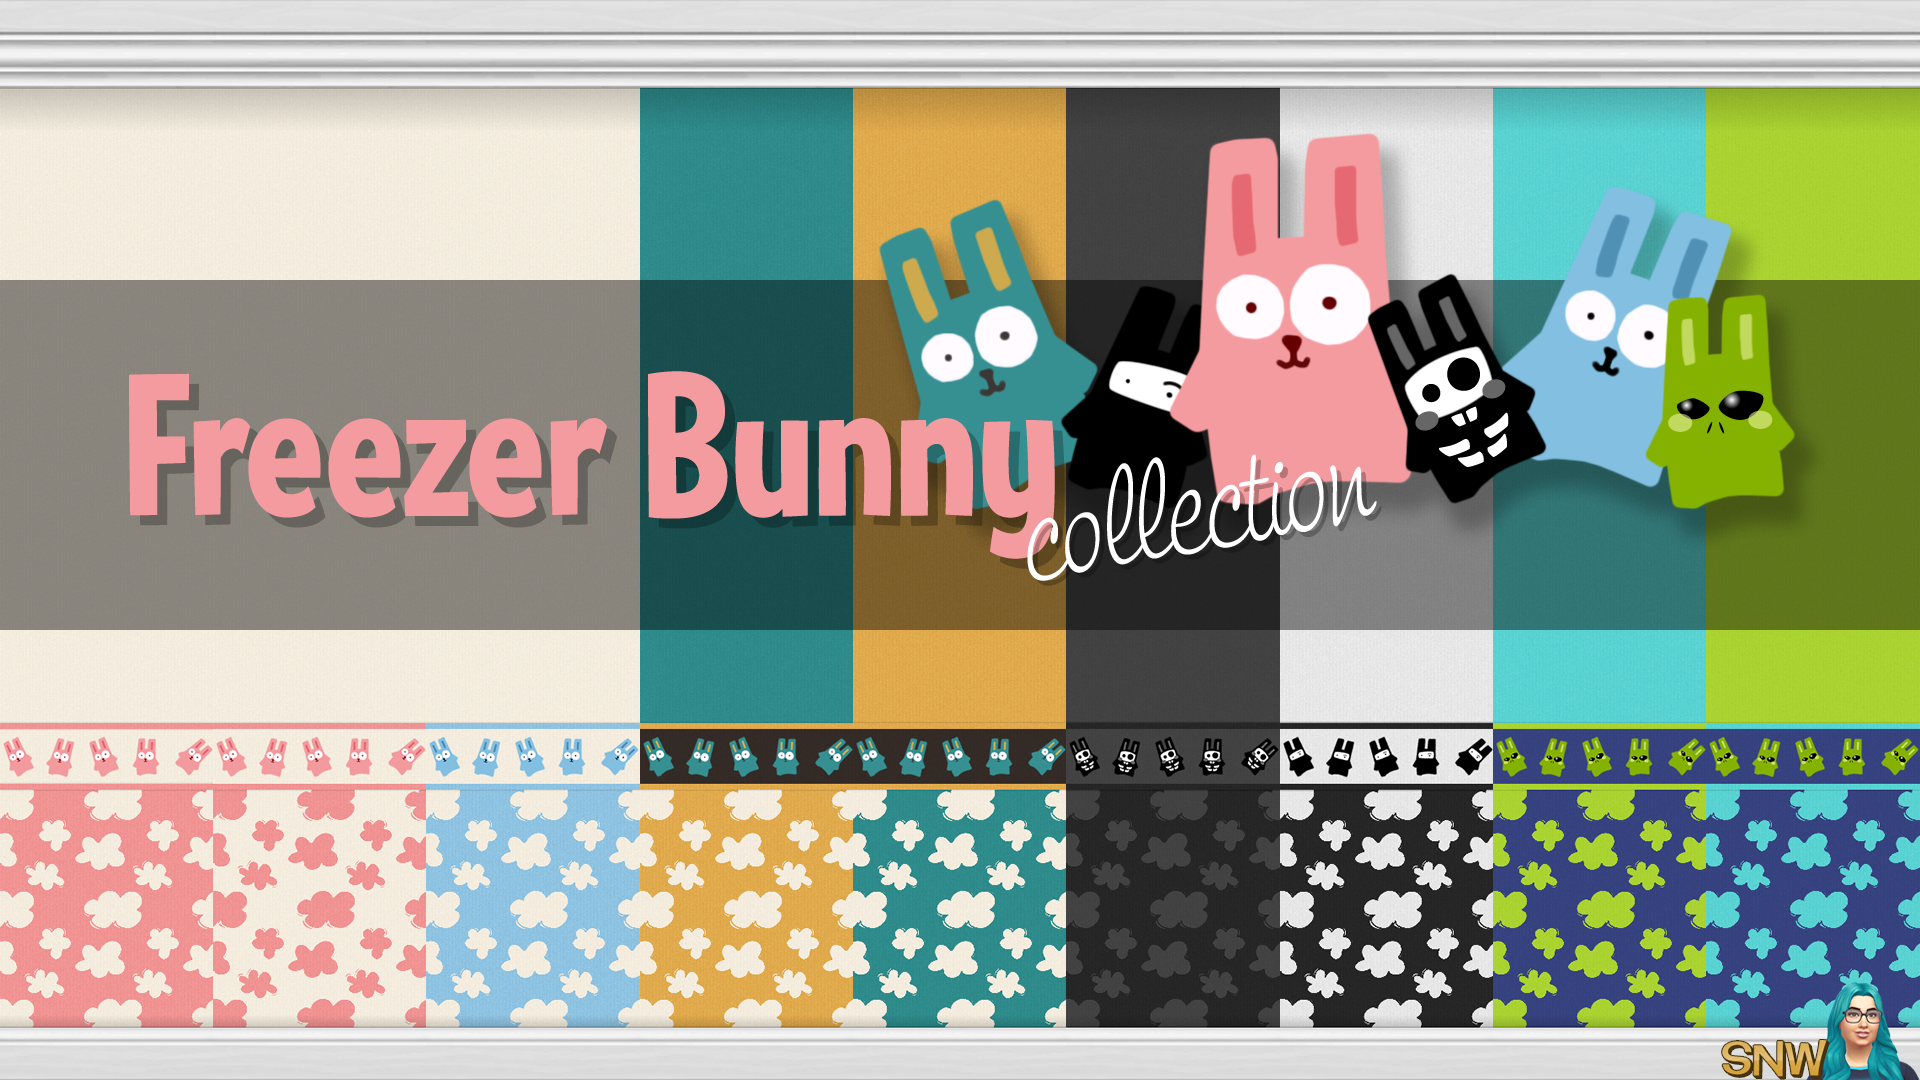 Freezer Bunny Collection Clouds Wallpapers Snw Sporenetwork Com